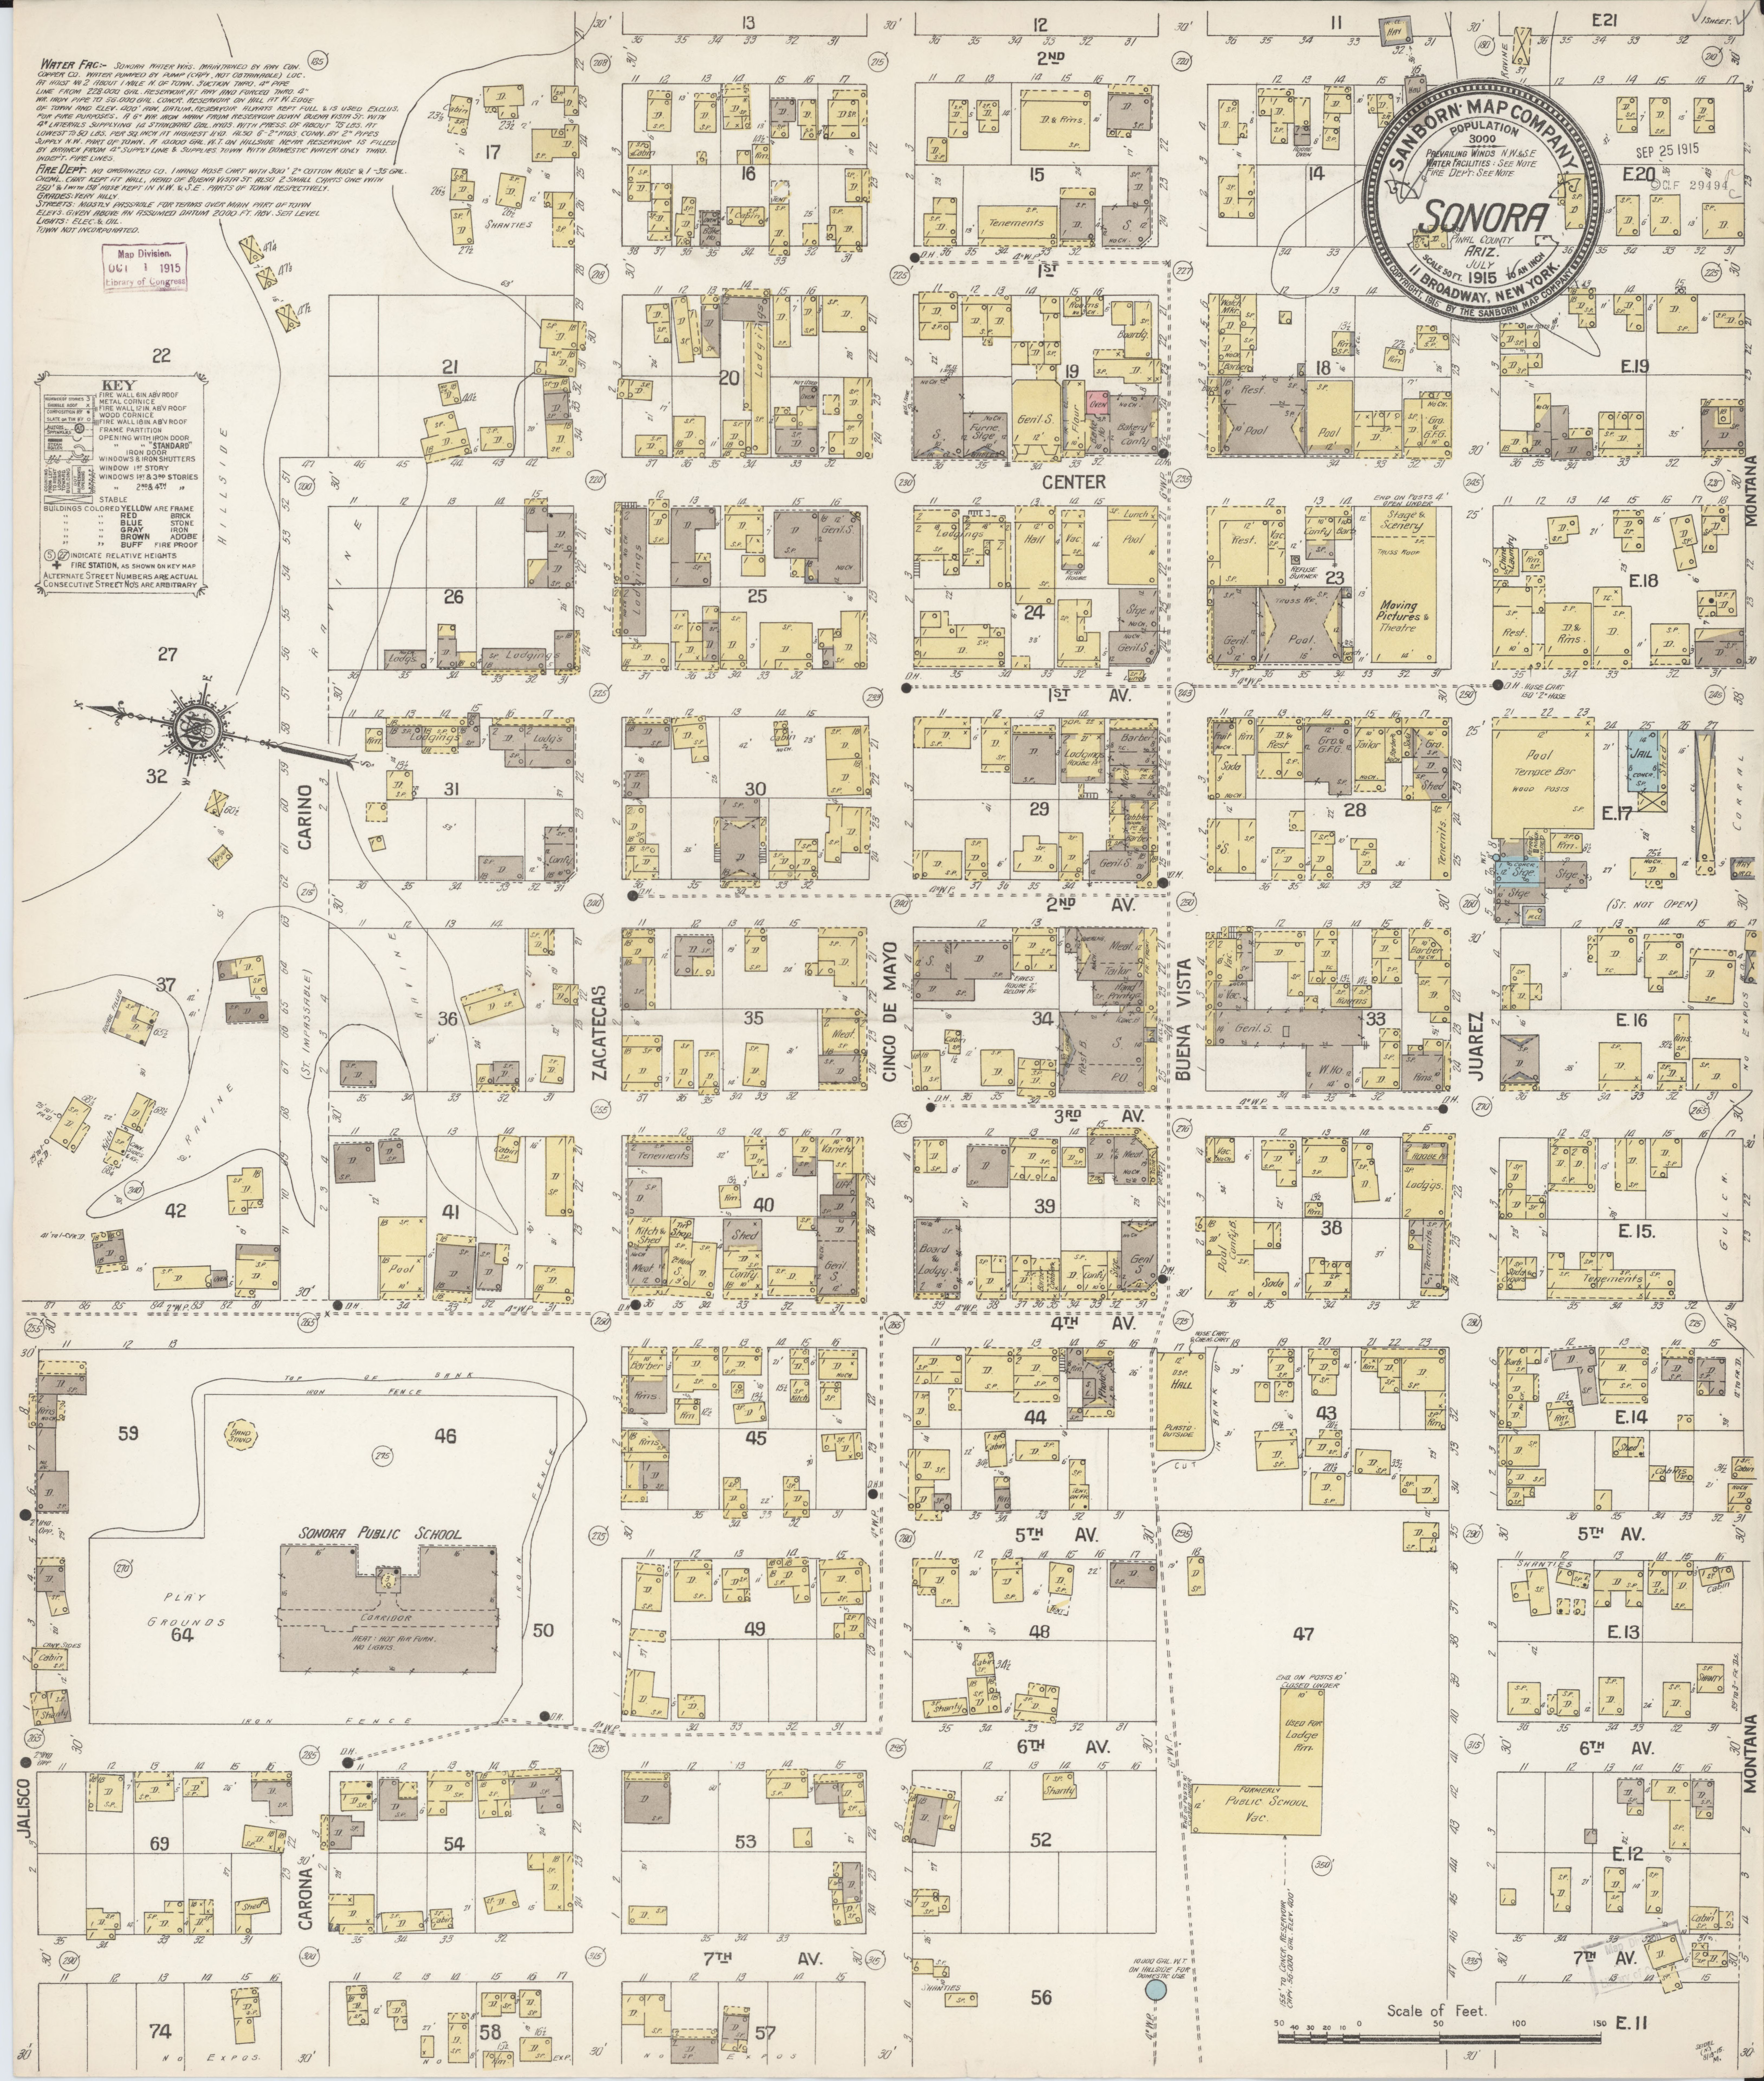 Sonora Arizona Map.File Sanborn Fire Insurance Map From Sonora Pinal County Arizona